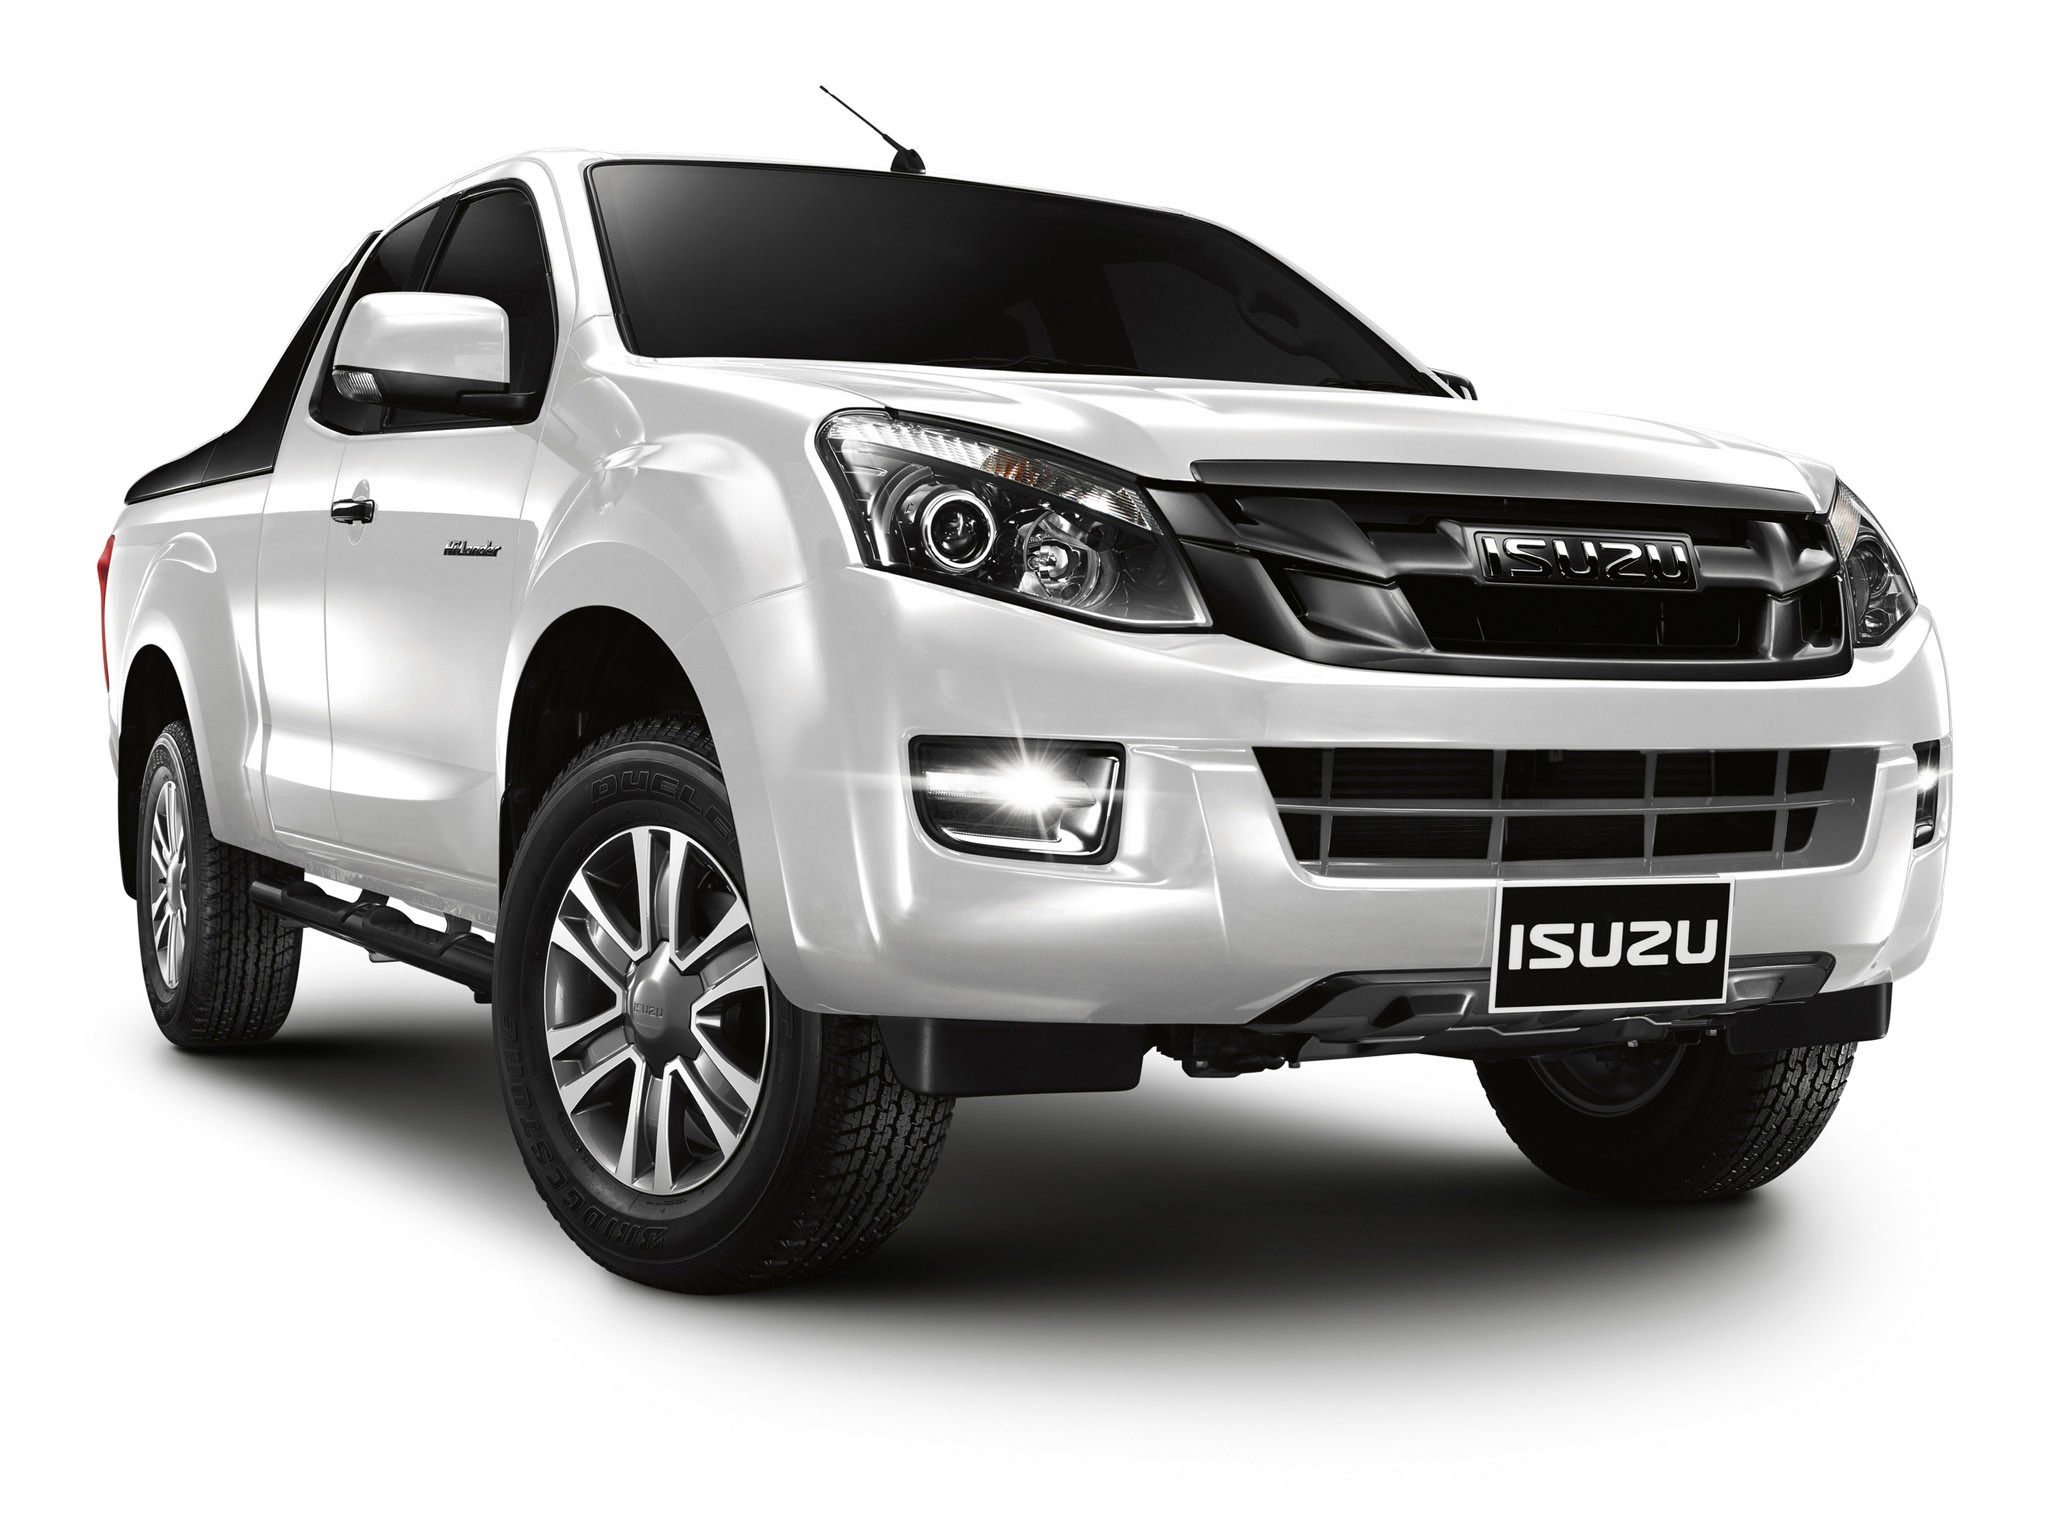 2015 Isuzu D-Max 99th Anniversary Extended Cab